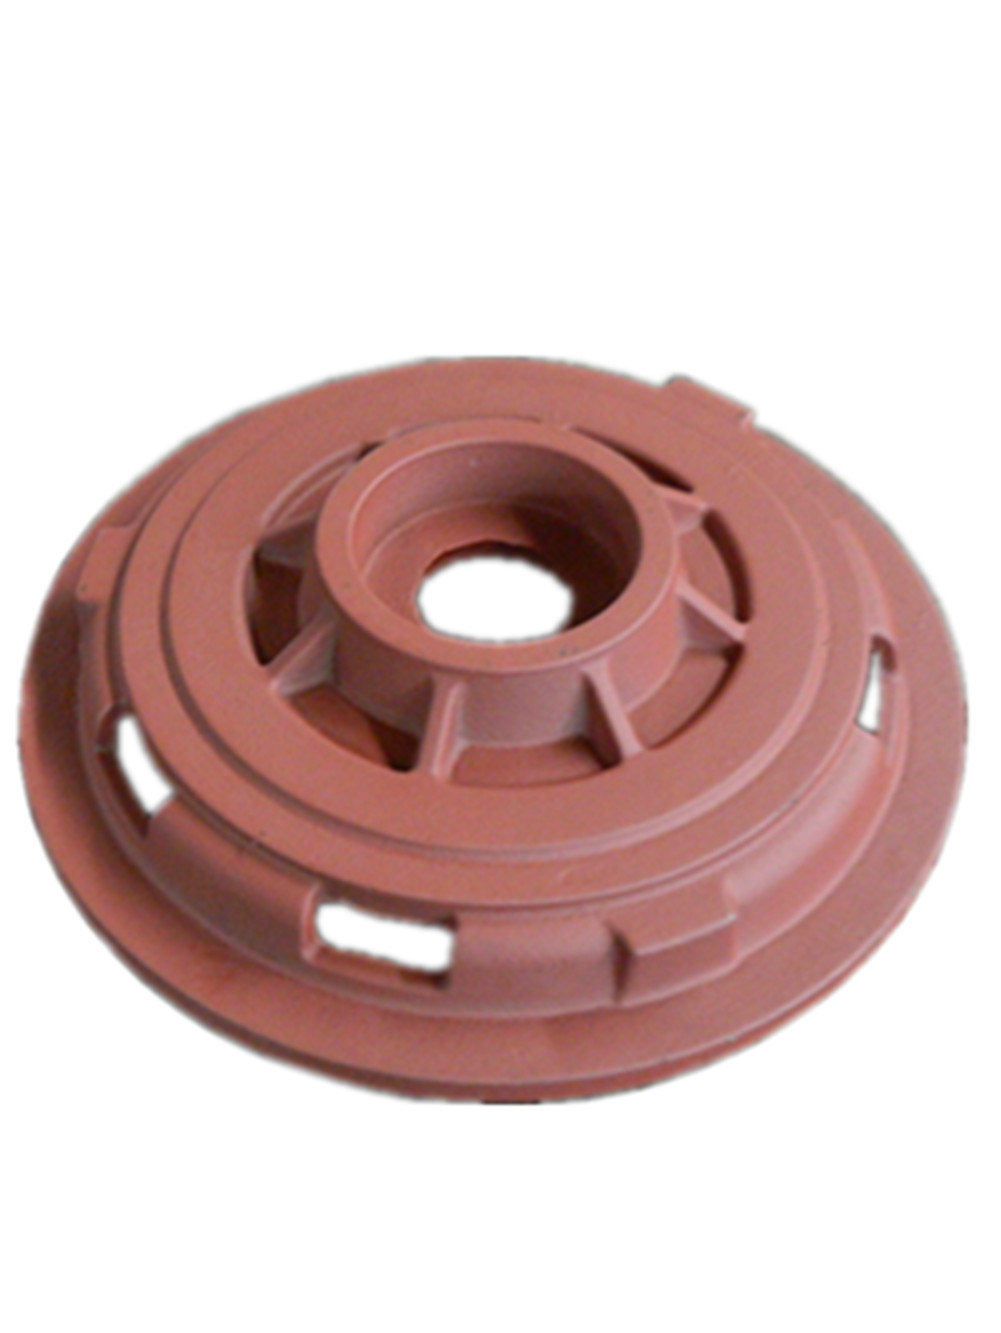 Gearbox Part Iron Casting